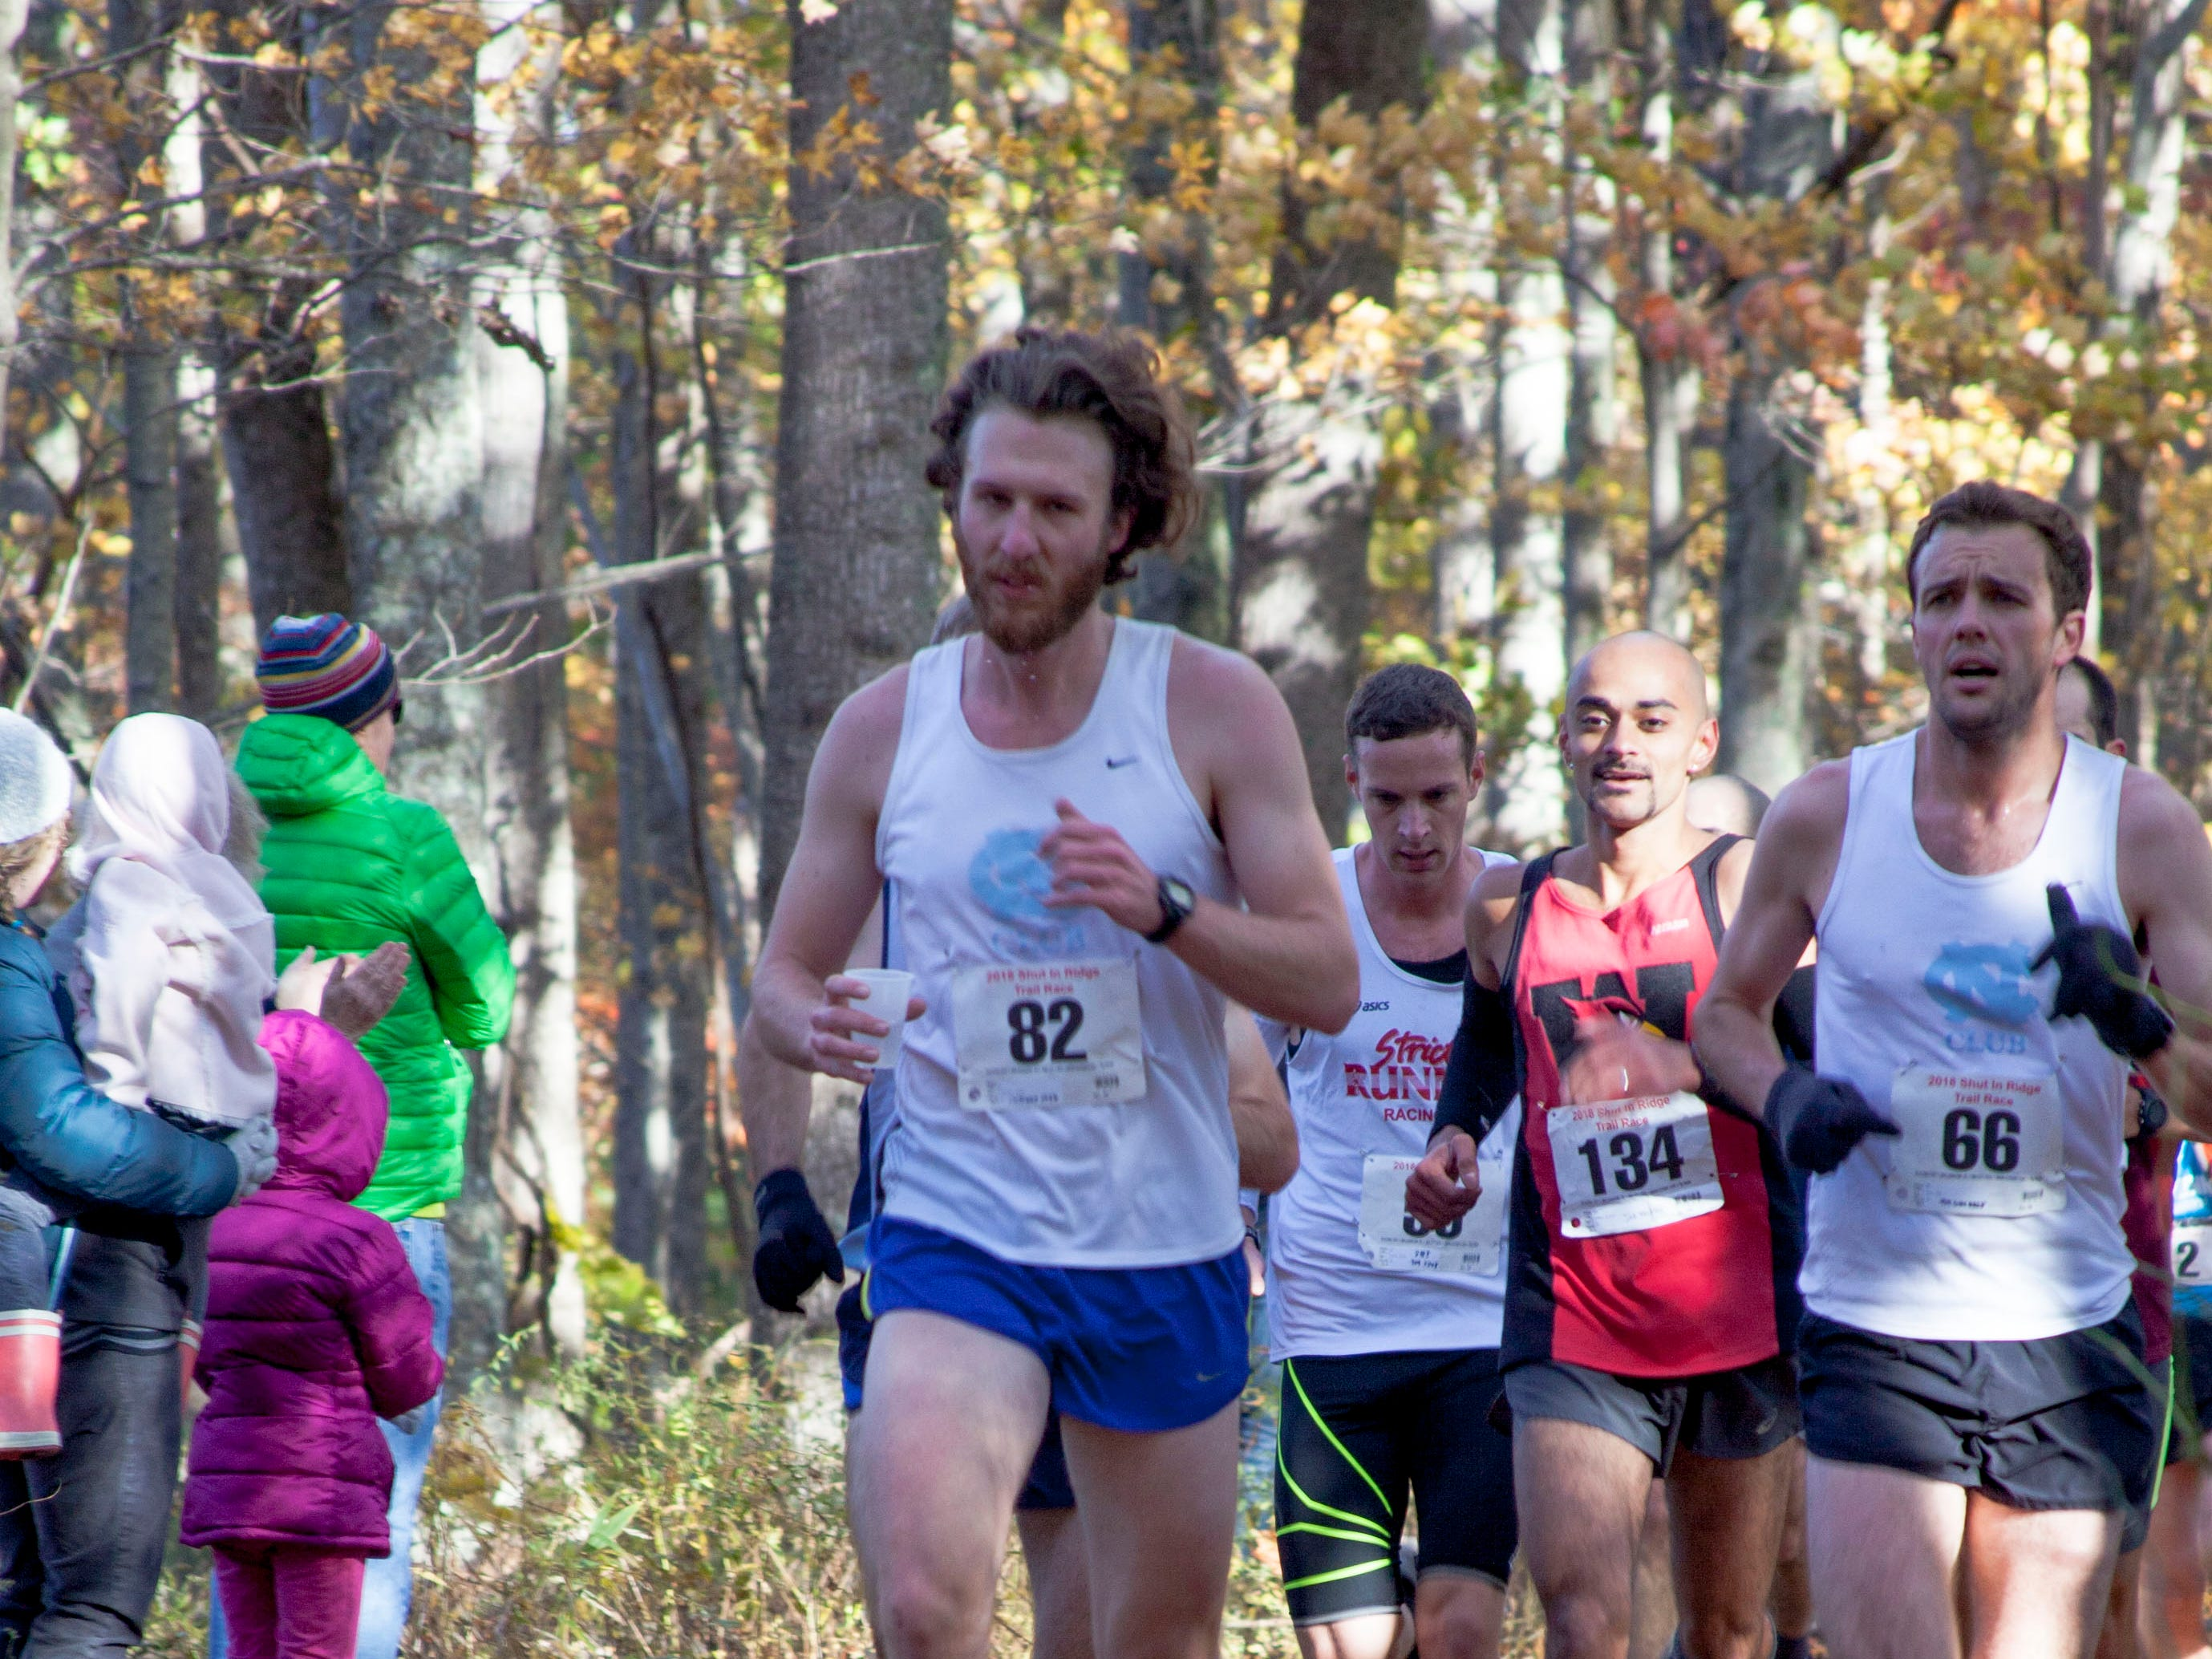 "The Shut-In Ridge Trail Race for 2018 took place Saturday, Nov. 3. The race along the Blue Ridge Parkway began at the North Carolina Arboretum and ended at Mount Pisgah. The 17.8-mile route is touted as ""one of Asheville's most iconic and grueling trails."" Learn more at shutintrailrace.com."